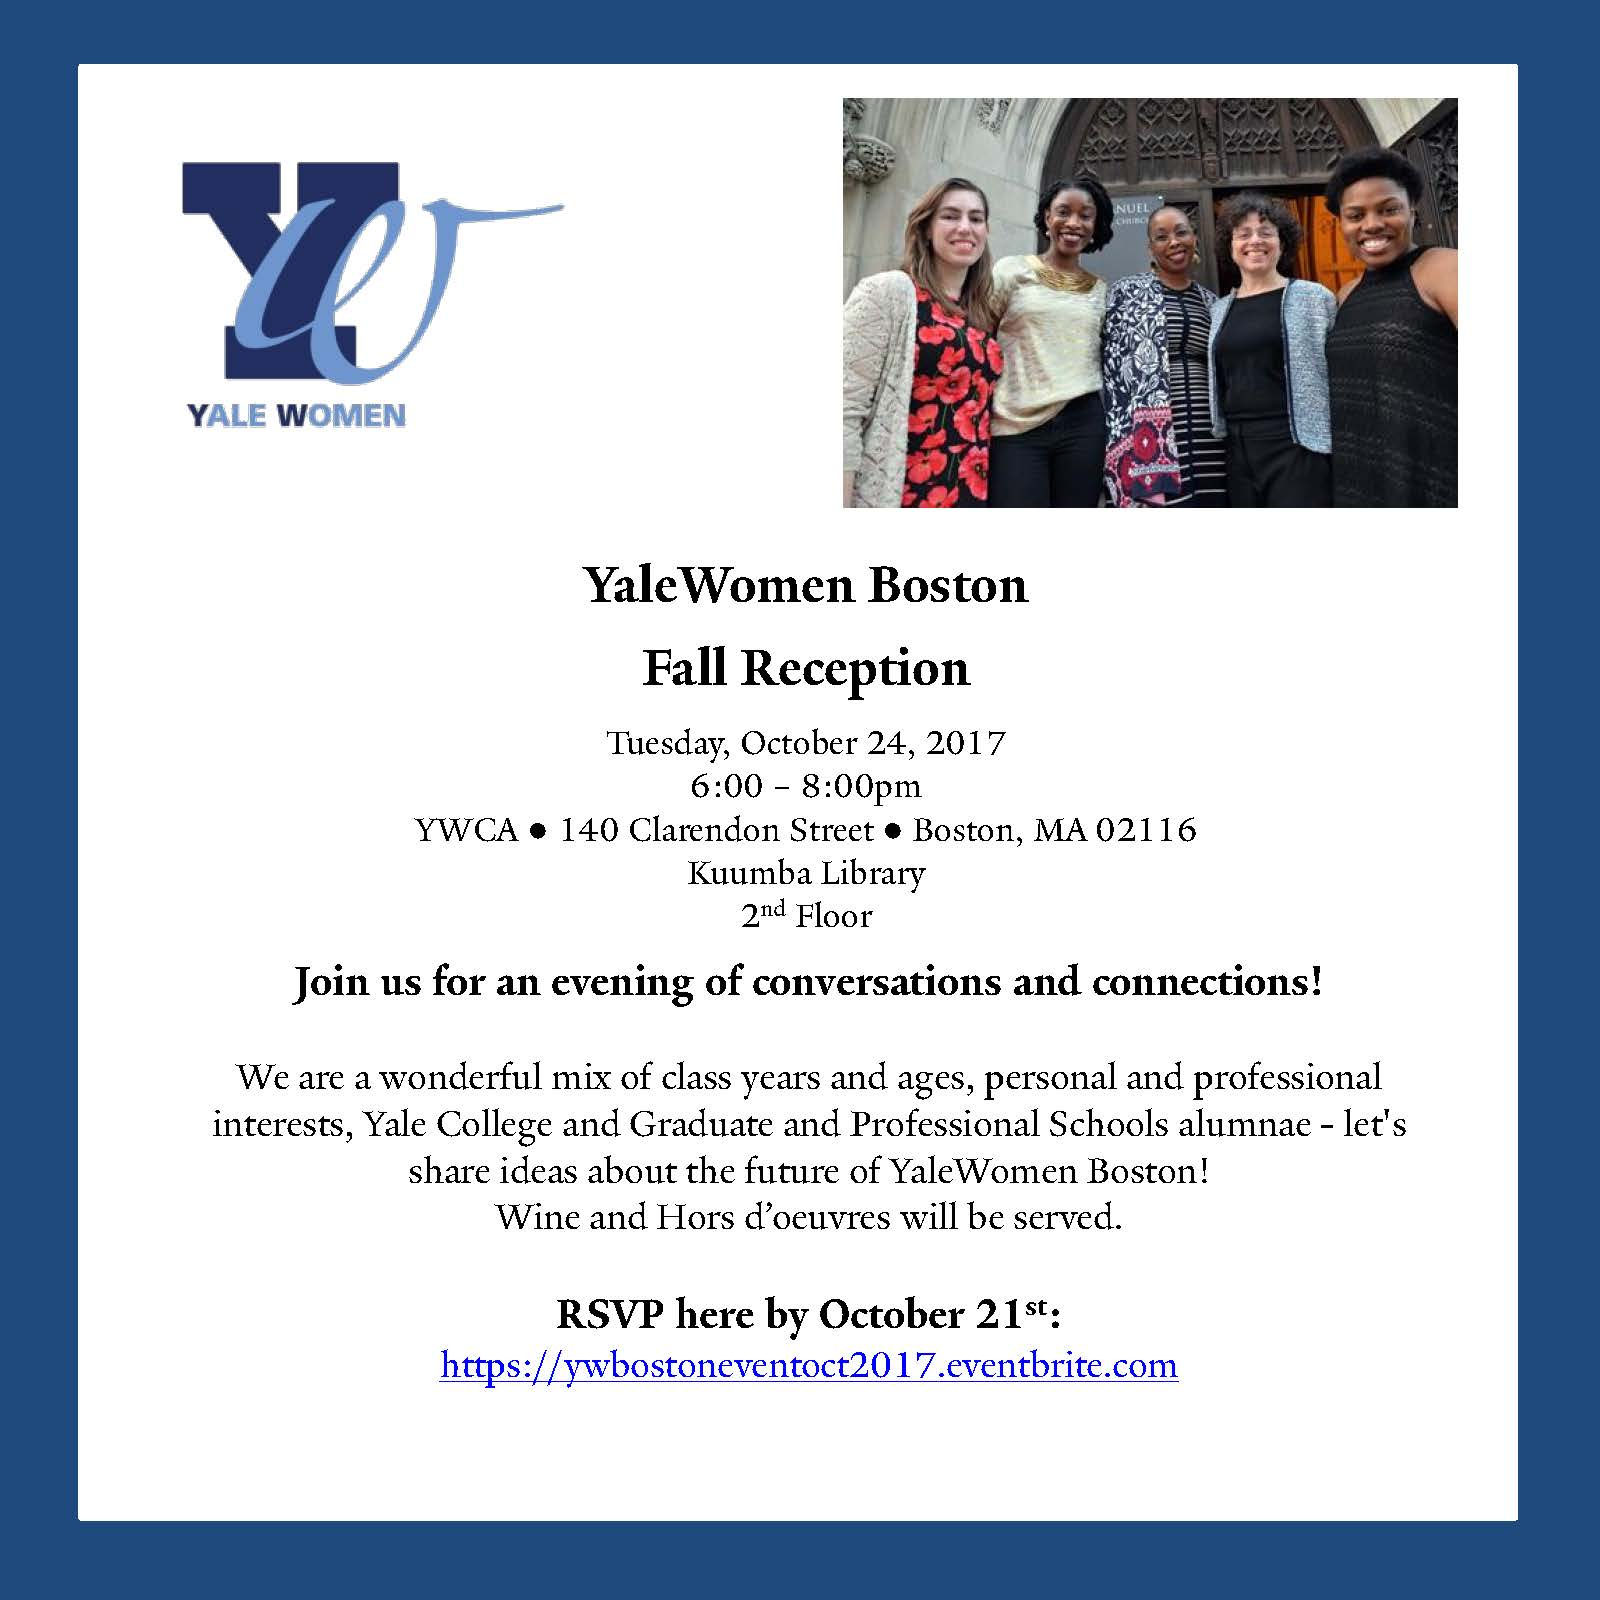 YaleWomen_Boston_Reception_Invite_10.24.2017_v3.jpg